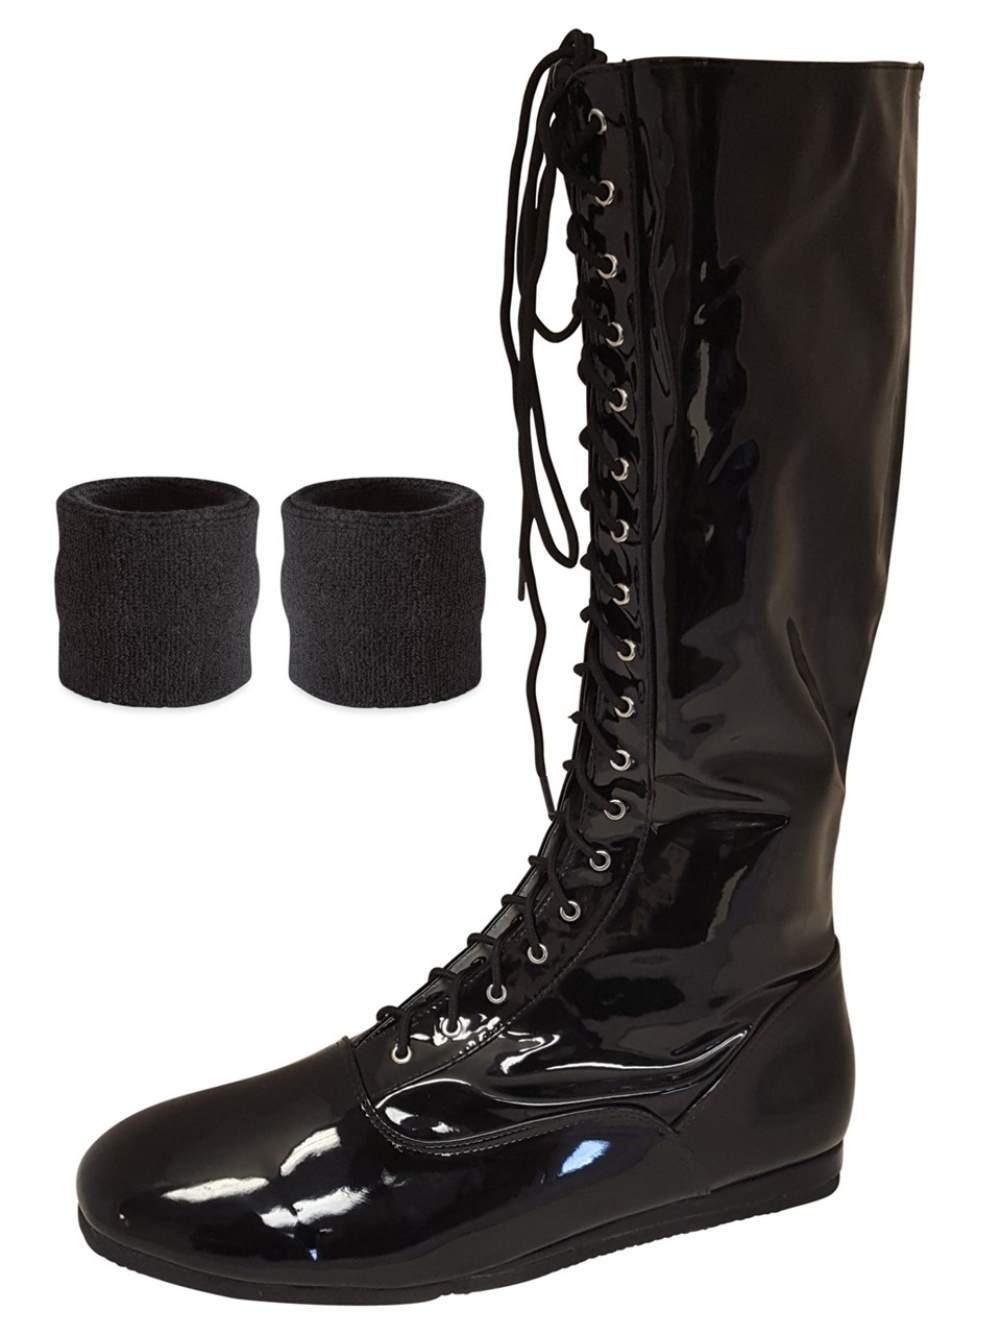 Pro Wrestling Costume Boots with